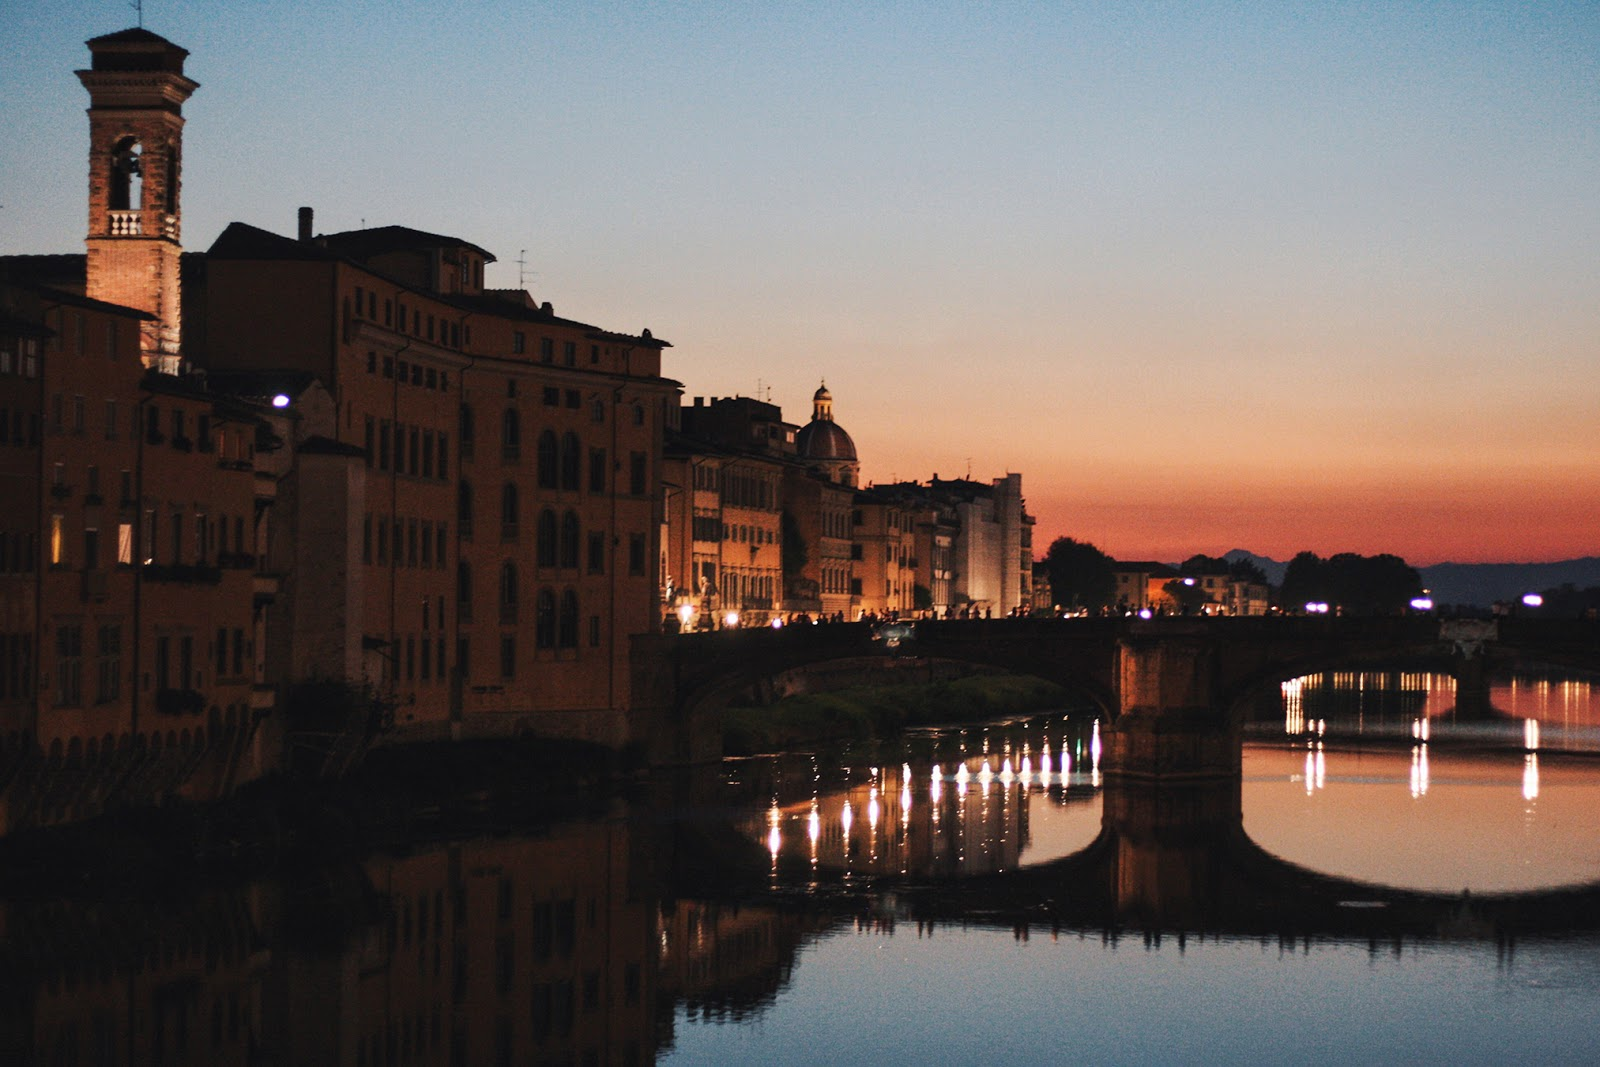 One day in Florence sunset